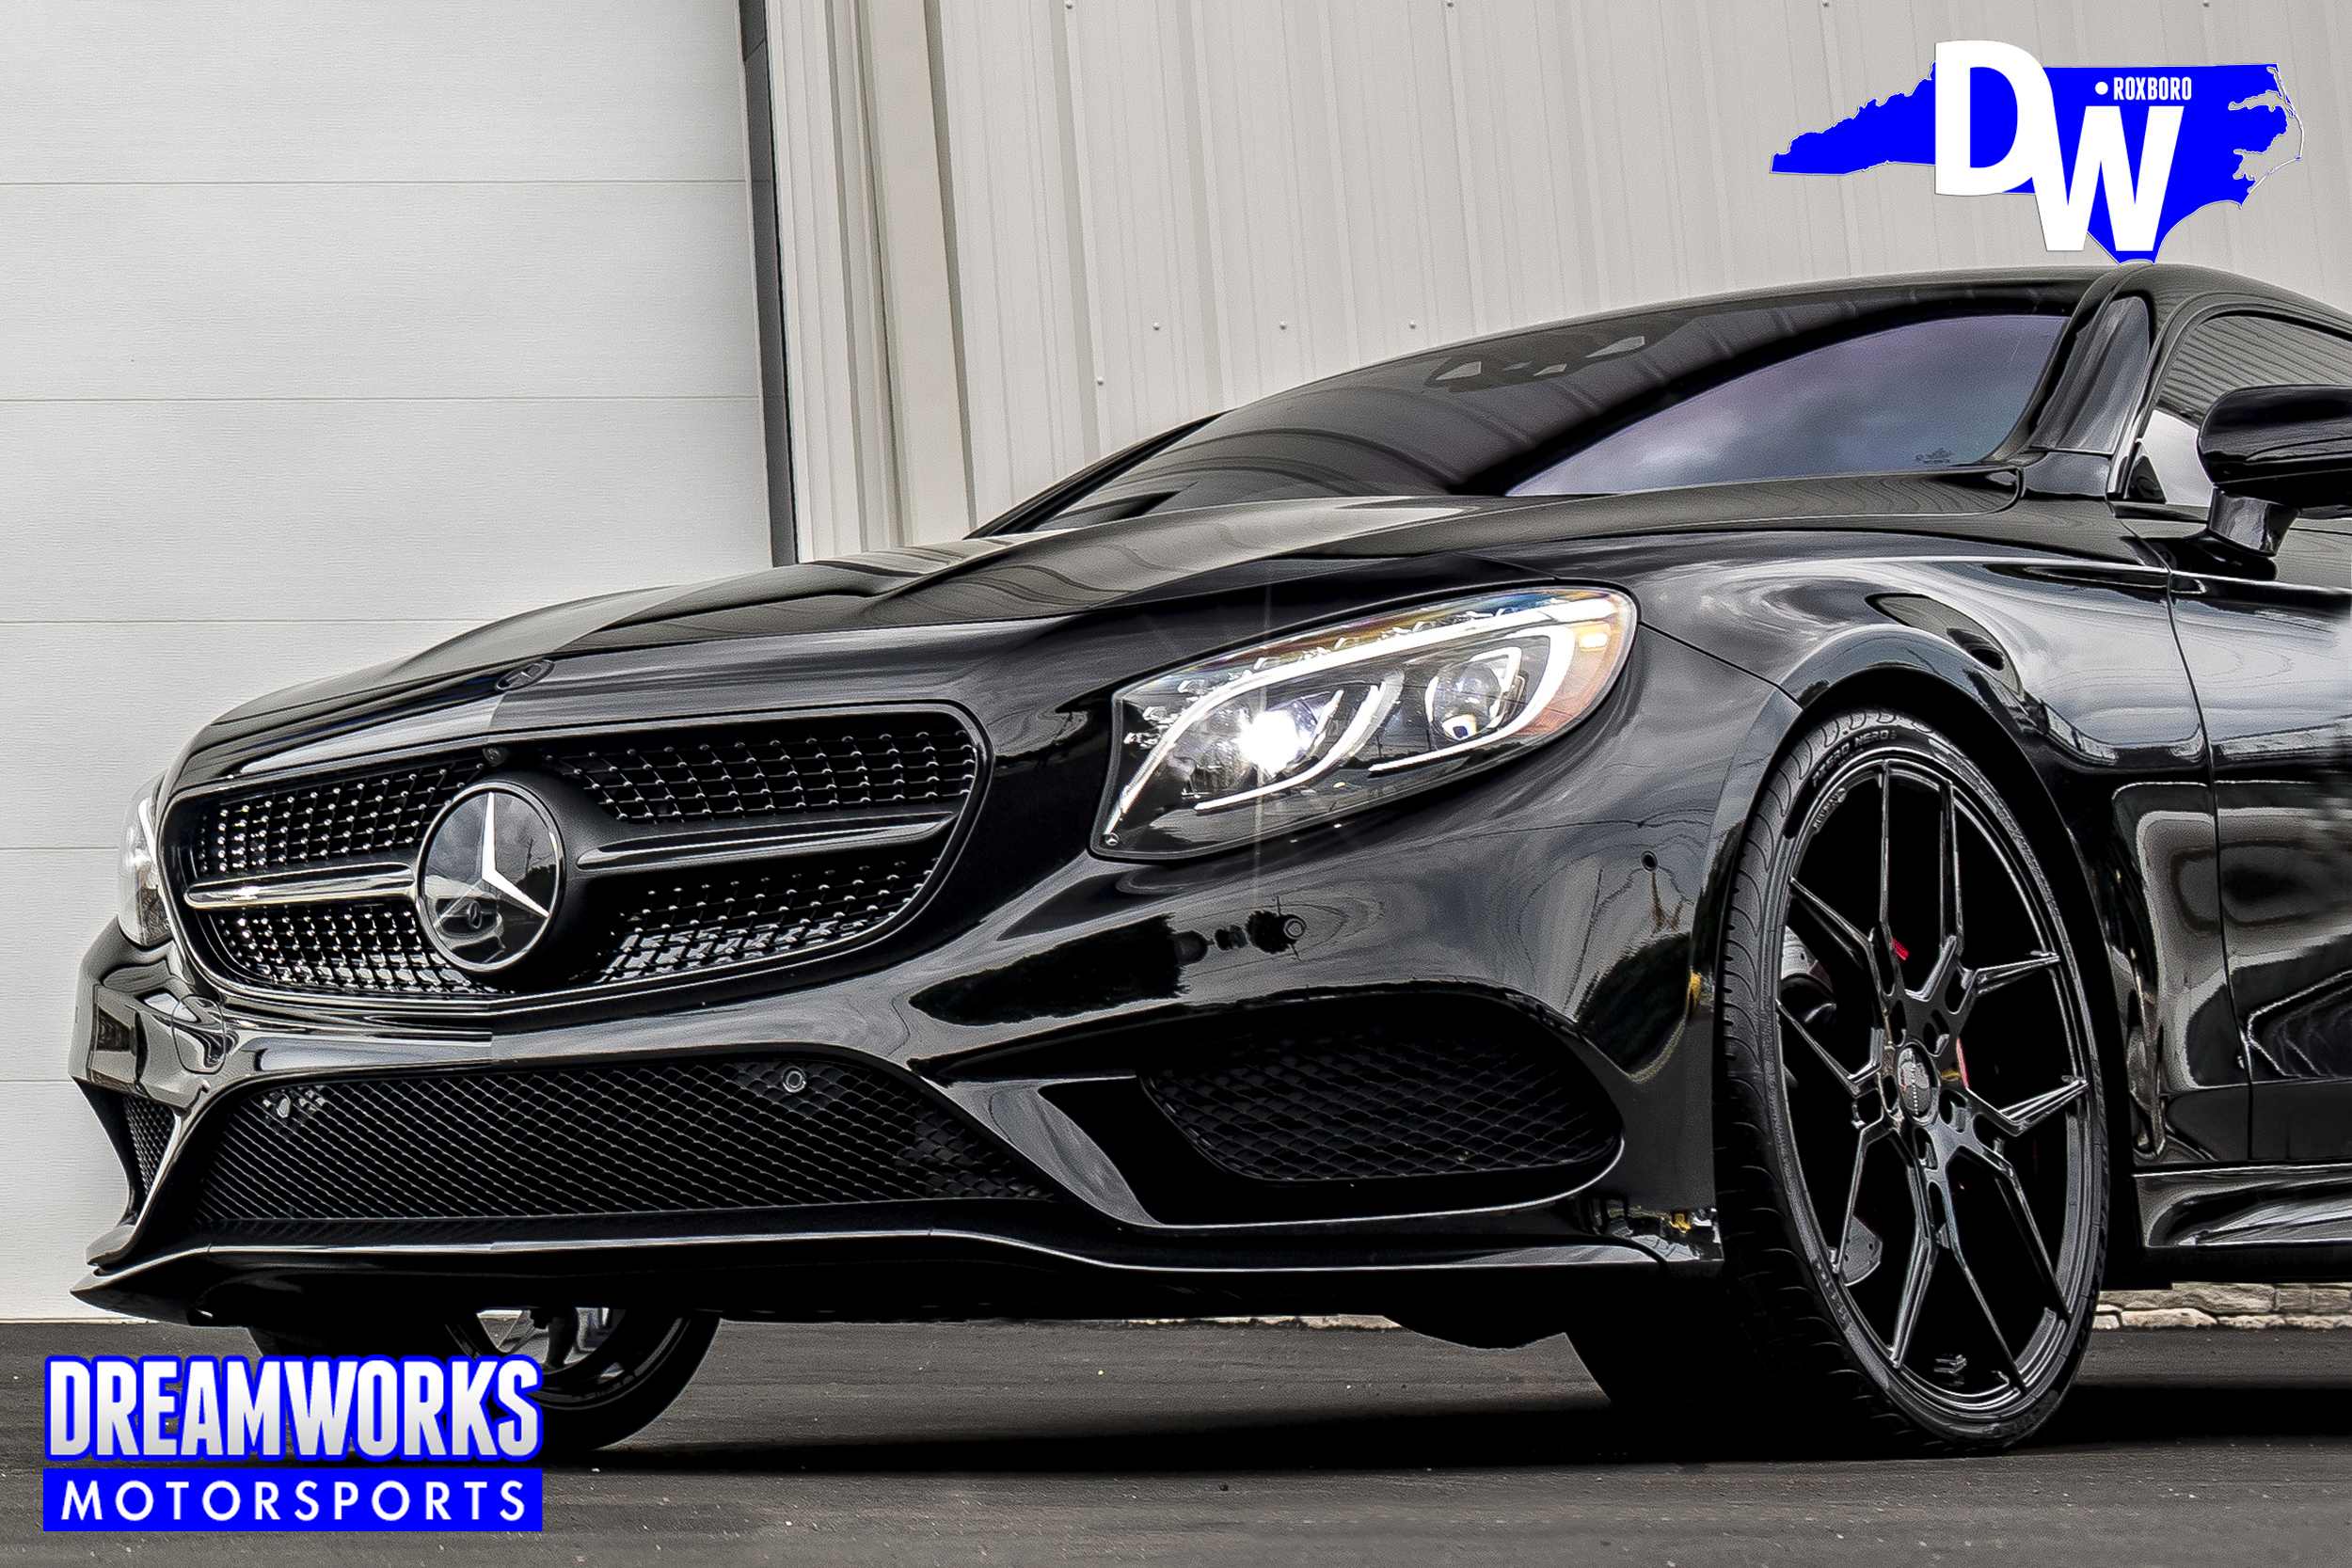 DW-s550-coupe-6.jpg